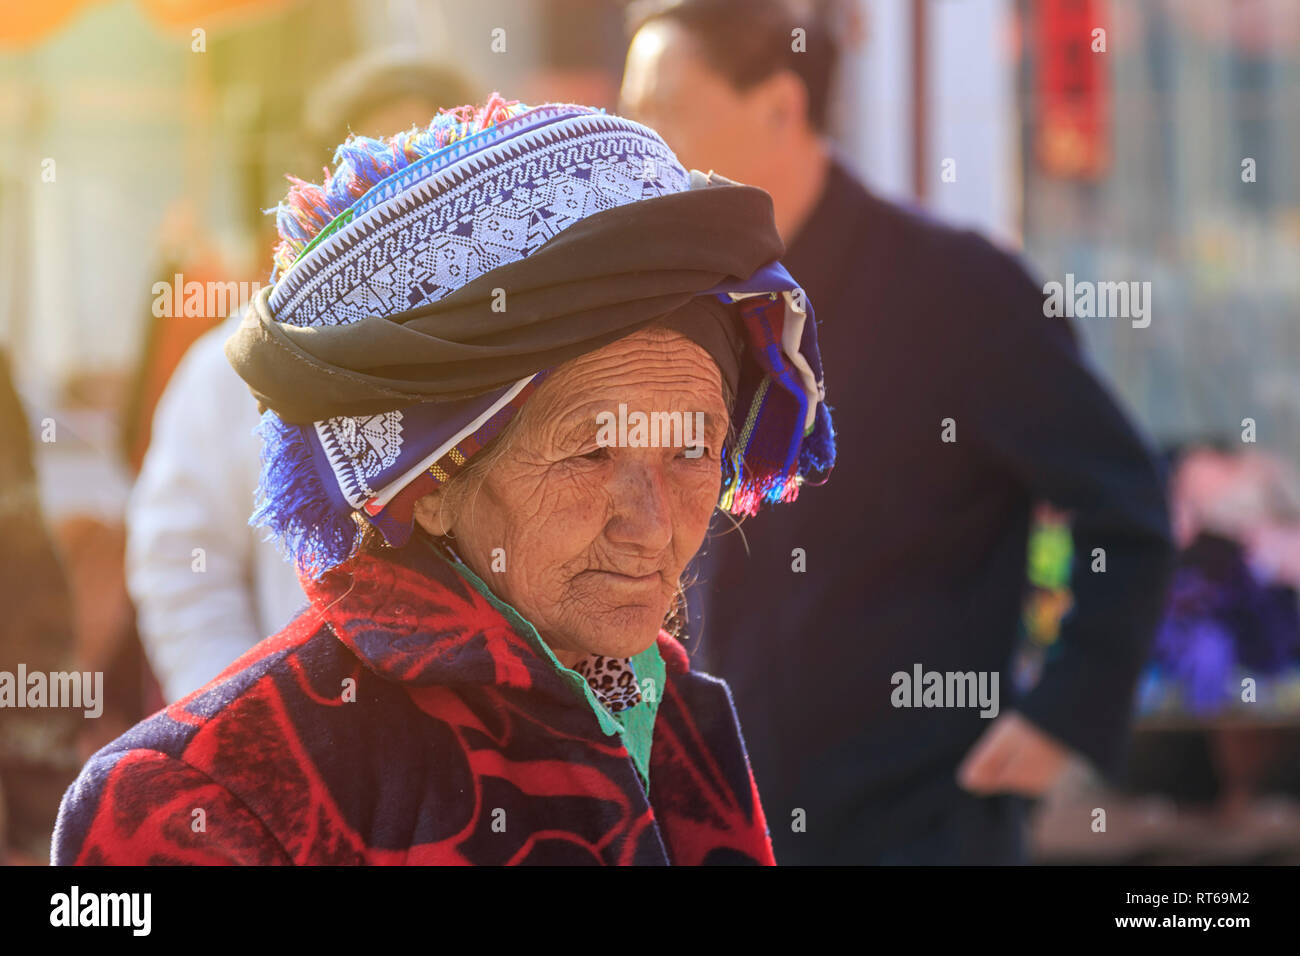 Shaxi, China - February 22, 2019: Portrait of an old Chinese woman in the Friday market in Shaxi old town Stock Photo